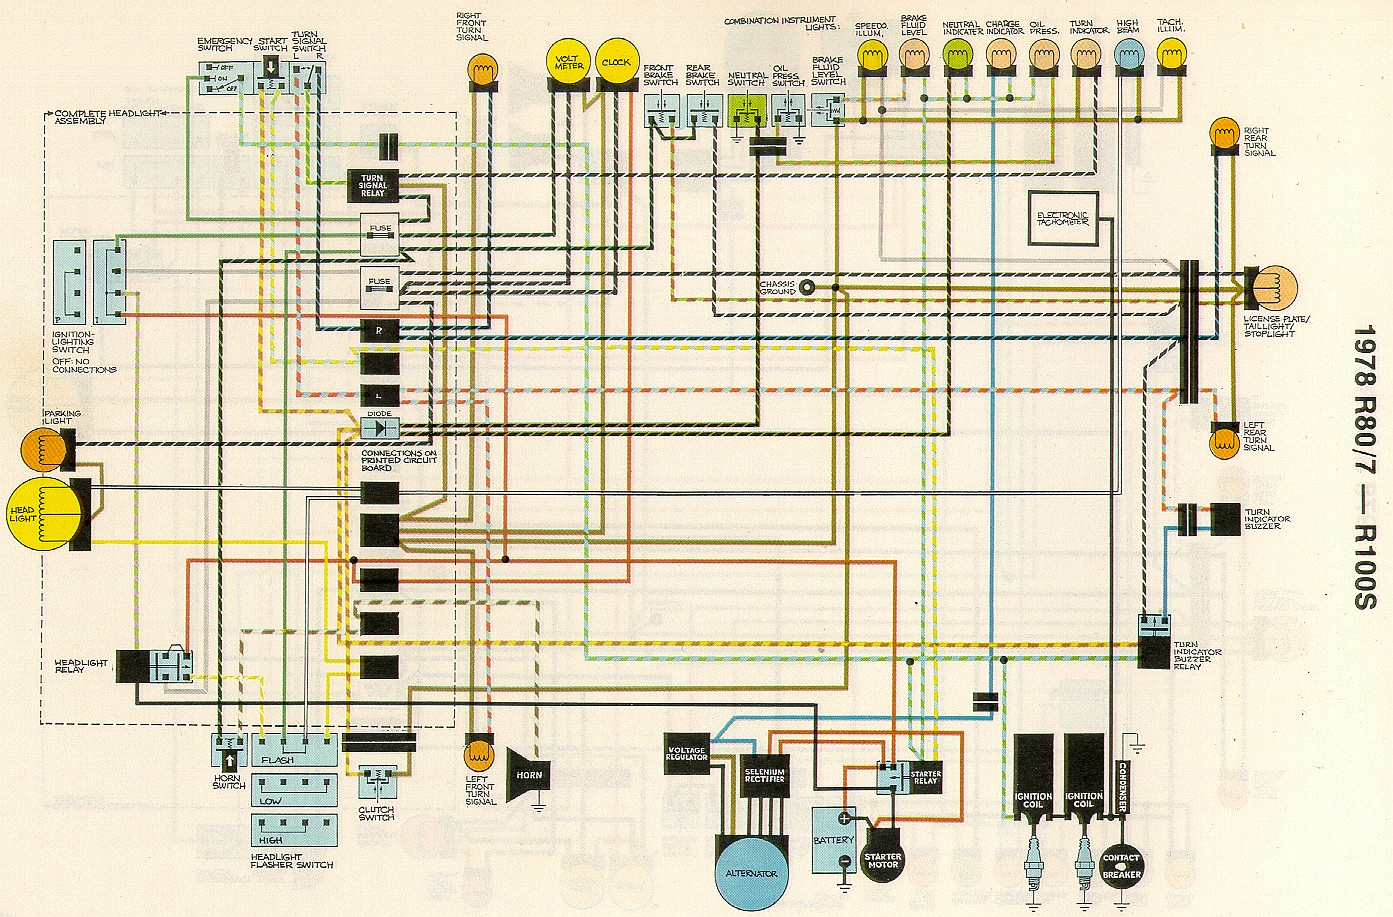 78 5 united articles wiring diagrams bmw r100rs gauge wiring diagram at pacquiaovsvargaslive.co